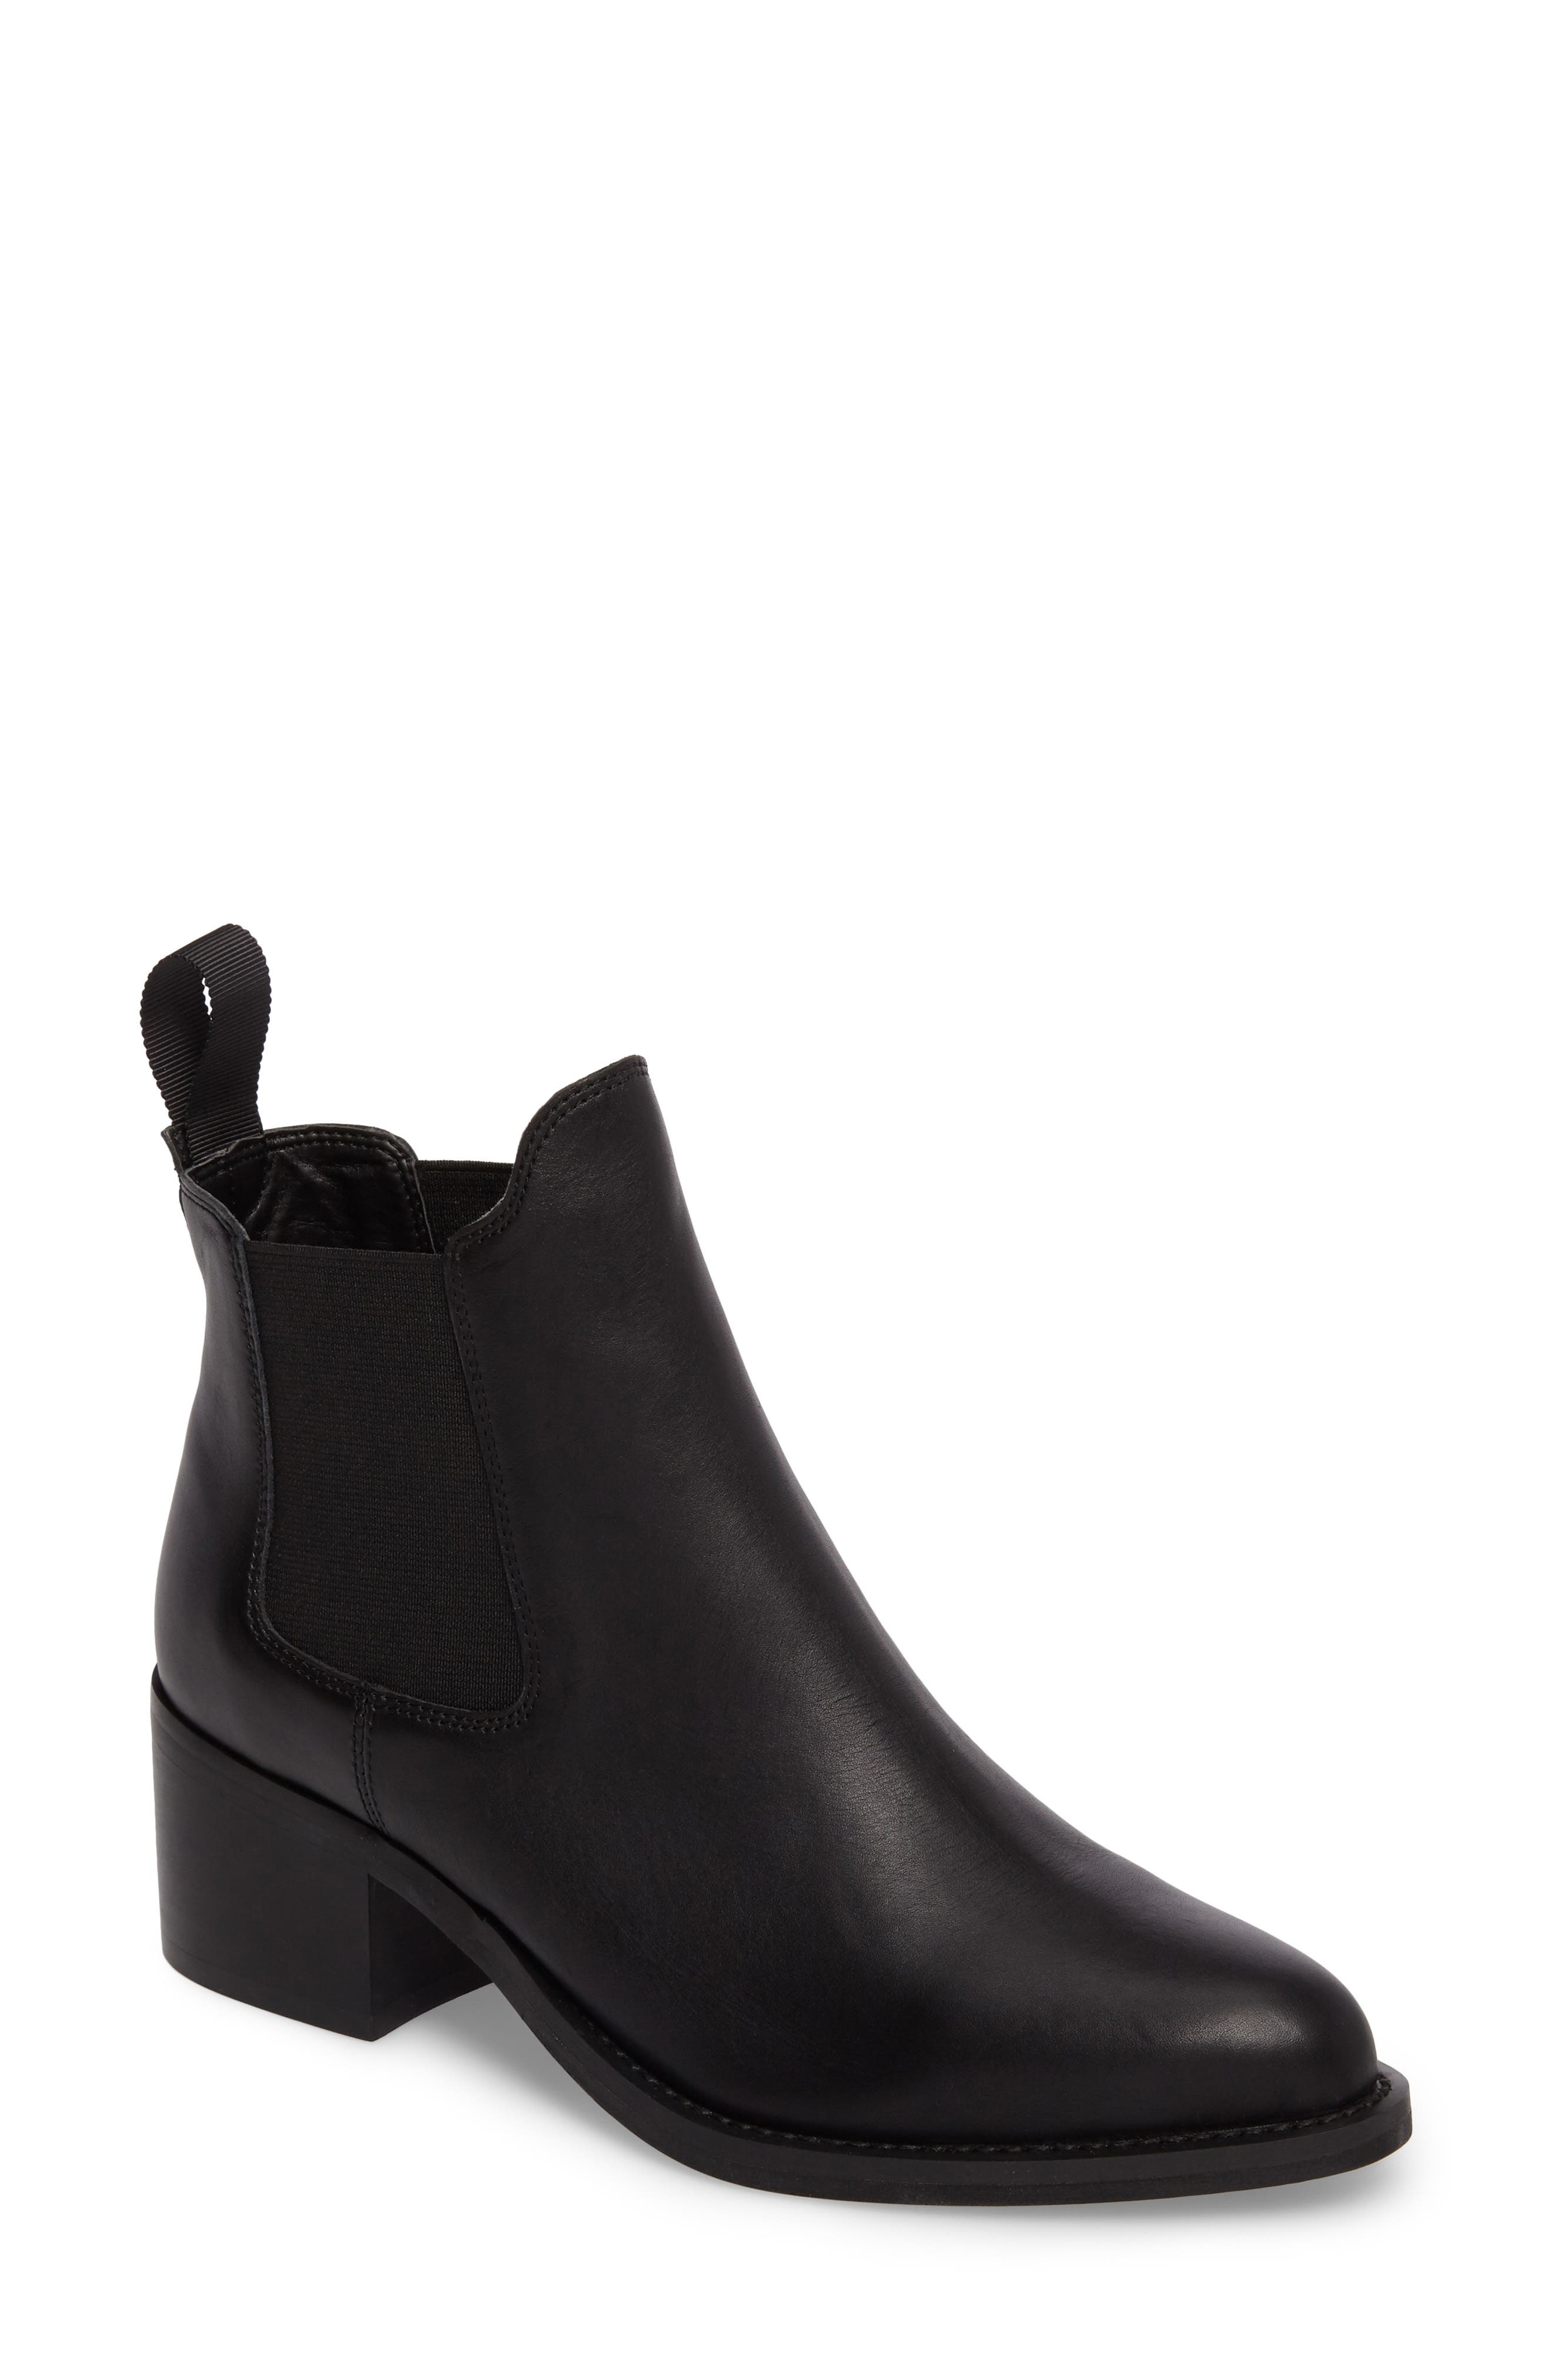 Main Image - Tony Bianco Fraya Ankle Bootie (Women)